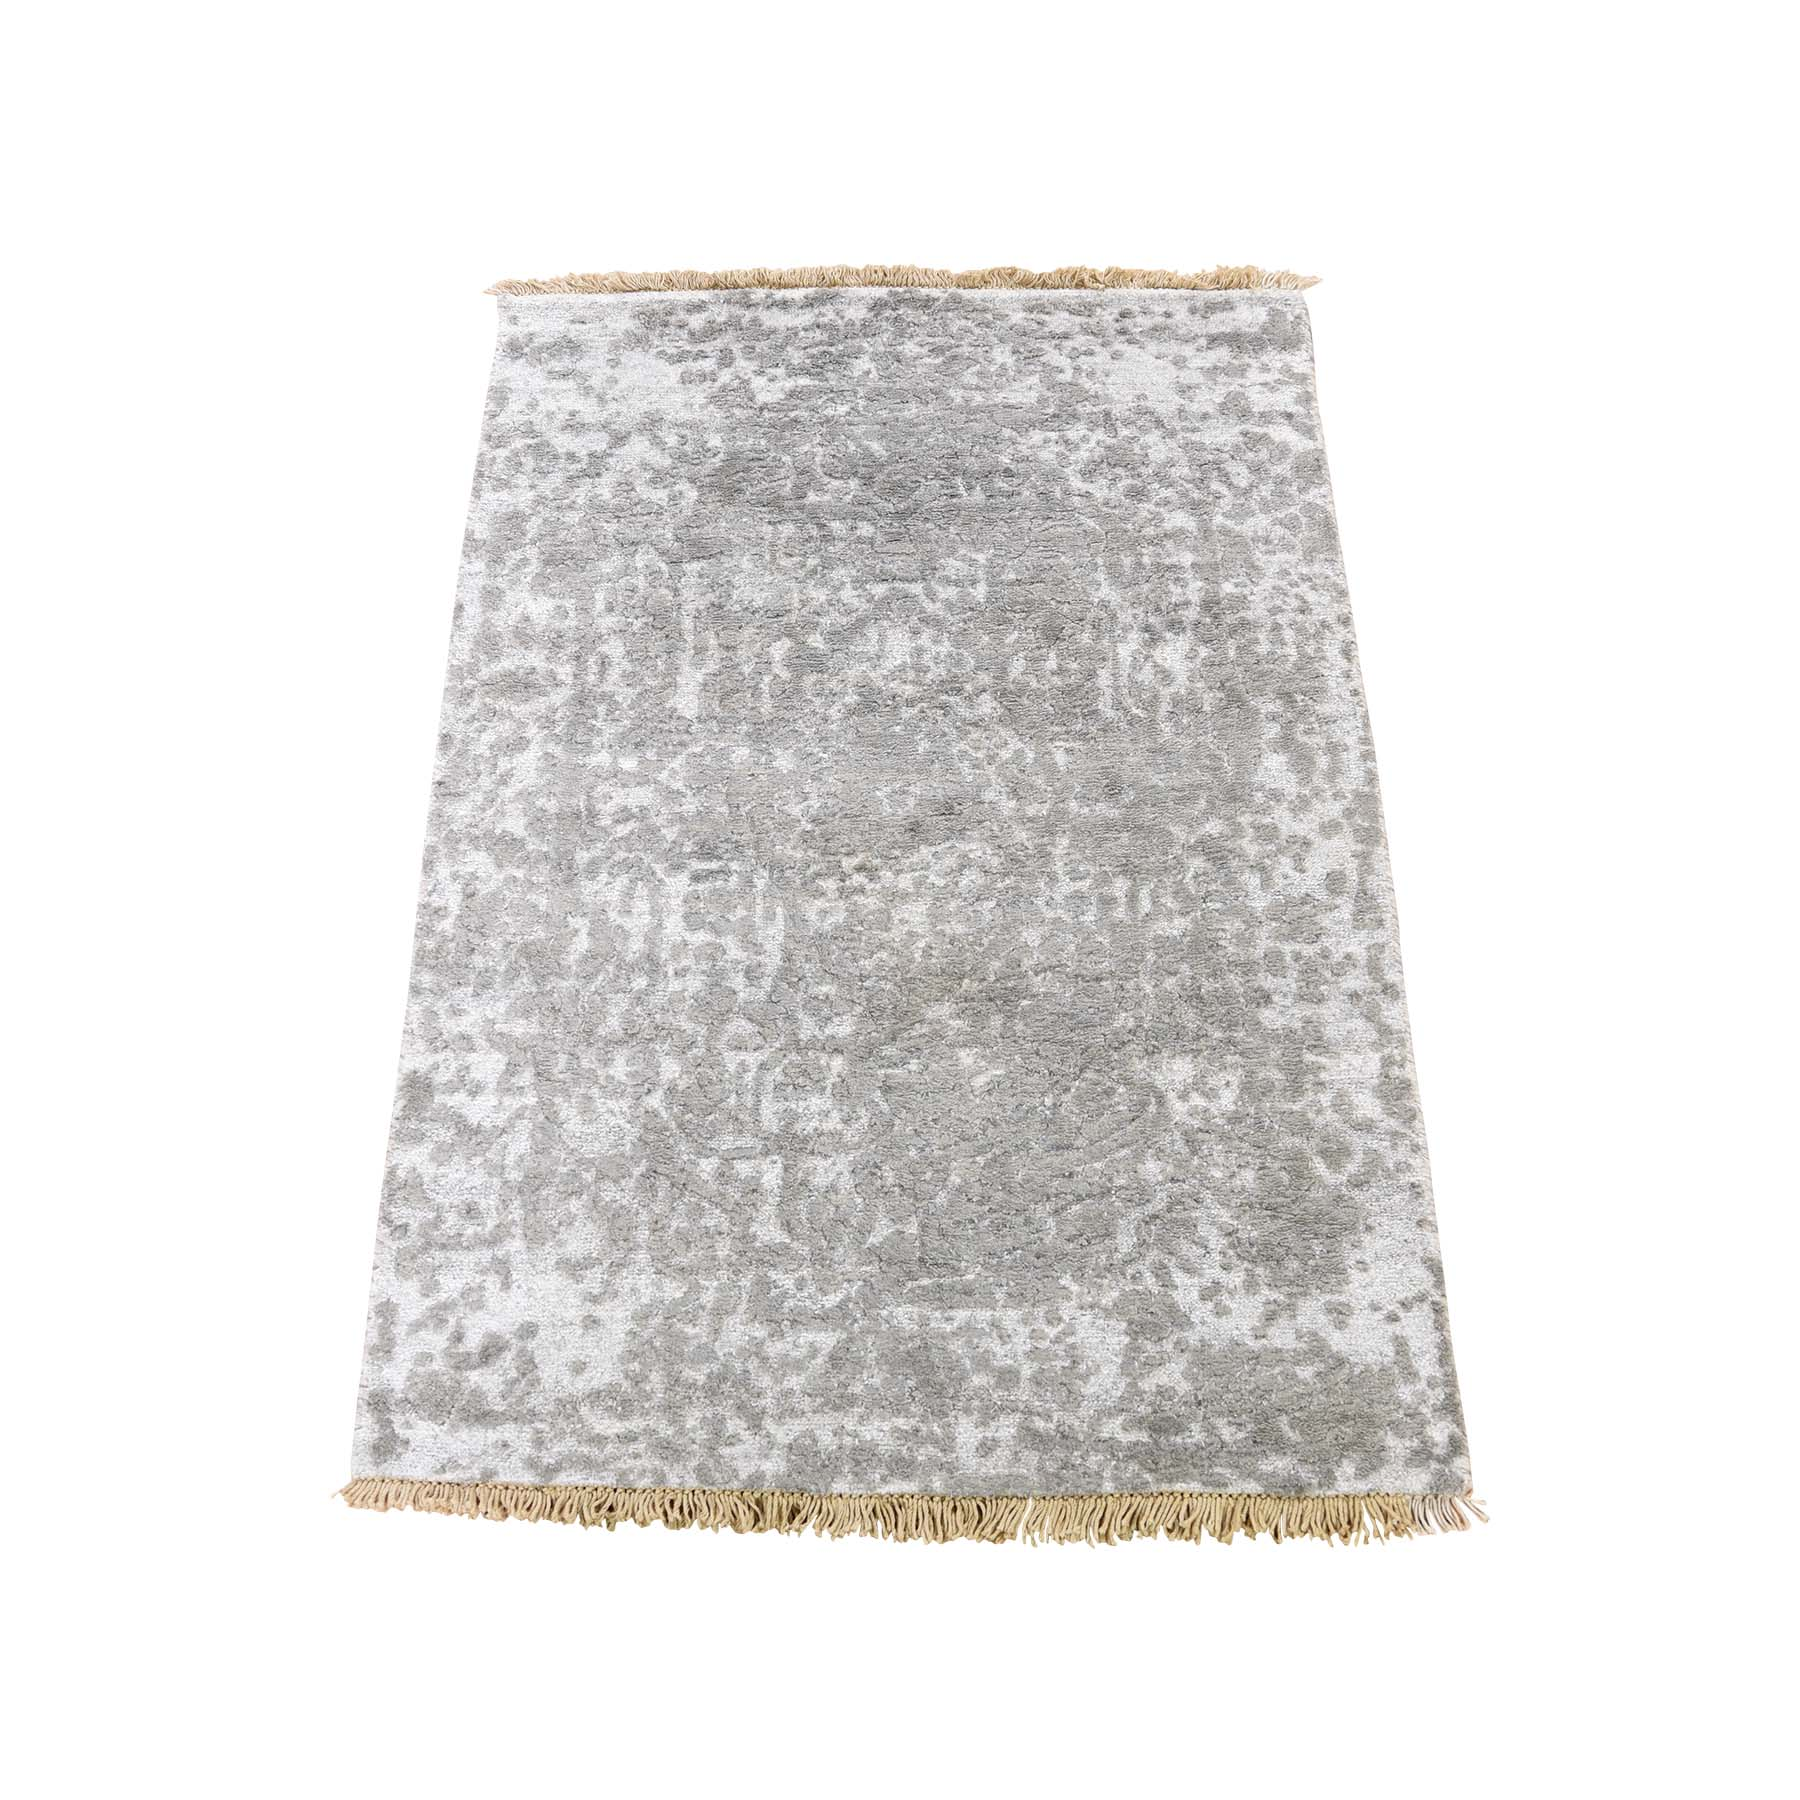 Mid Century Modern Collection Hand Knotted Grey Rug No: 0188874